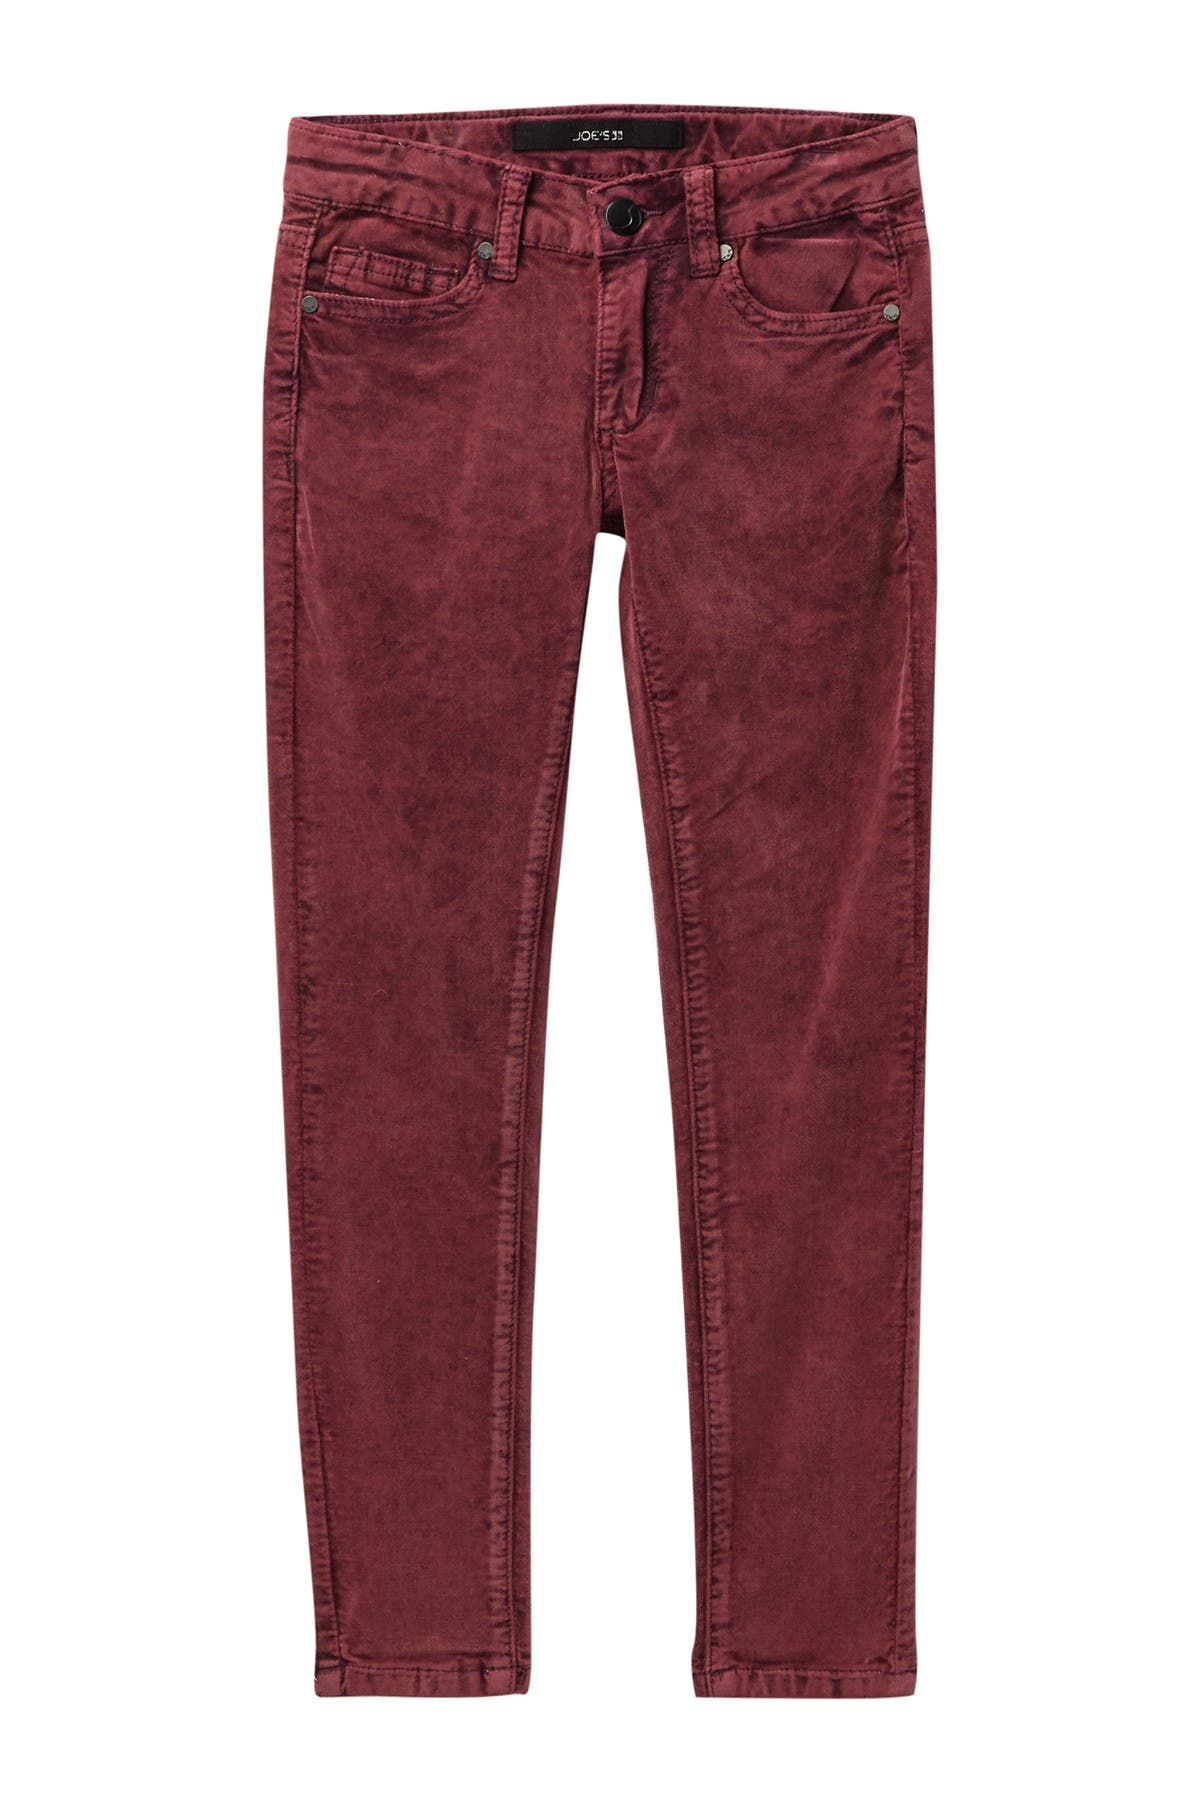 Image of Joe's Jeans Mid Rise Skinny Ribbless Corduroy Jeans